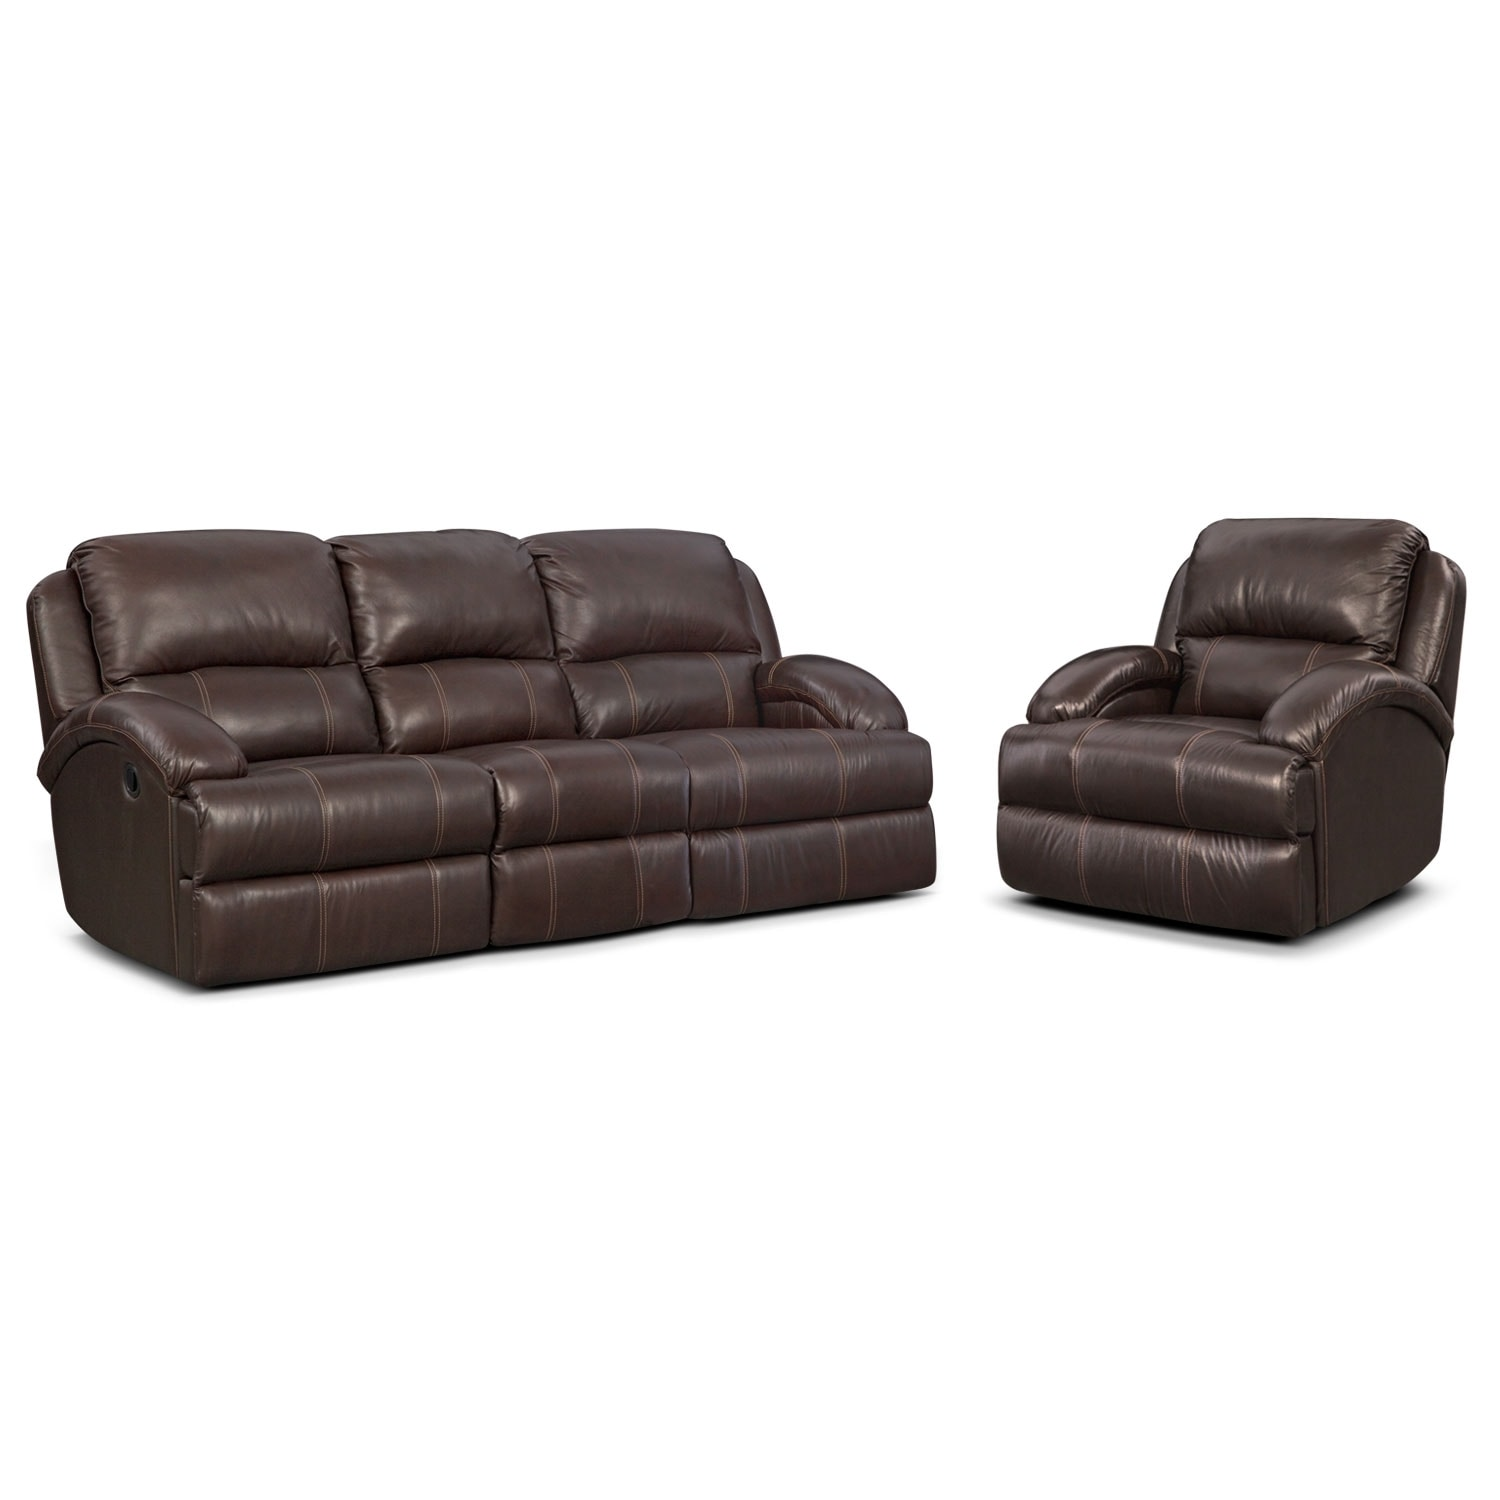 Living Room Furniture - Nolan Dual Reclining Sofa and Glider Recliner Set - Chocolate